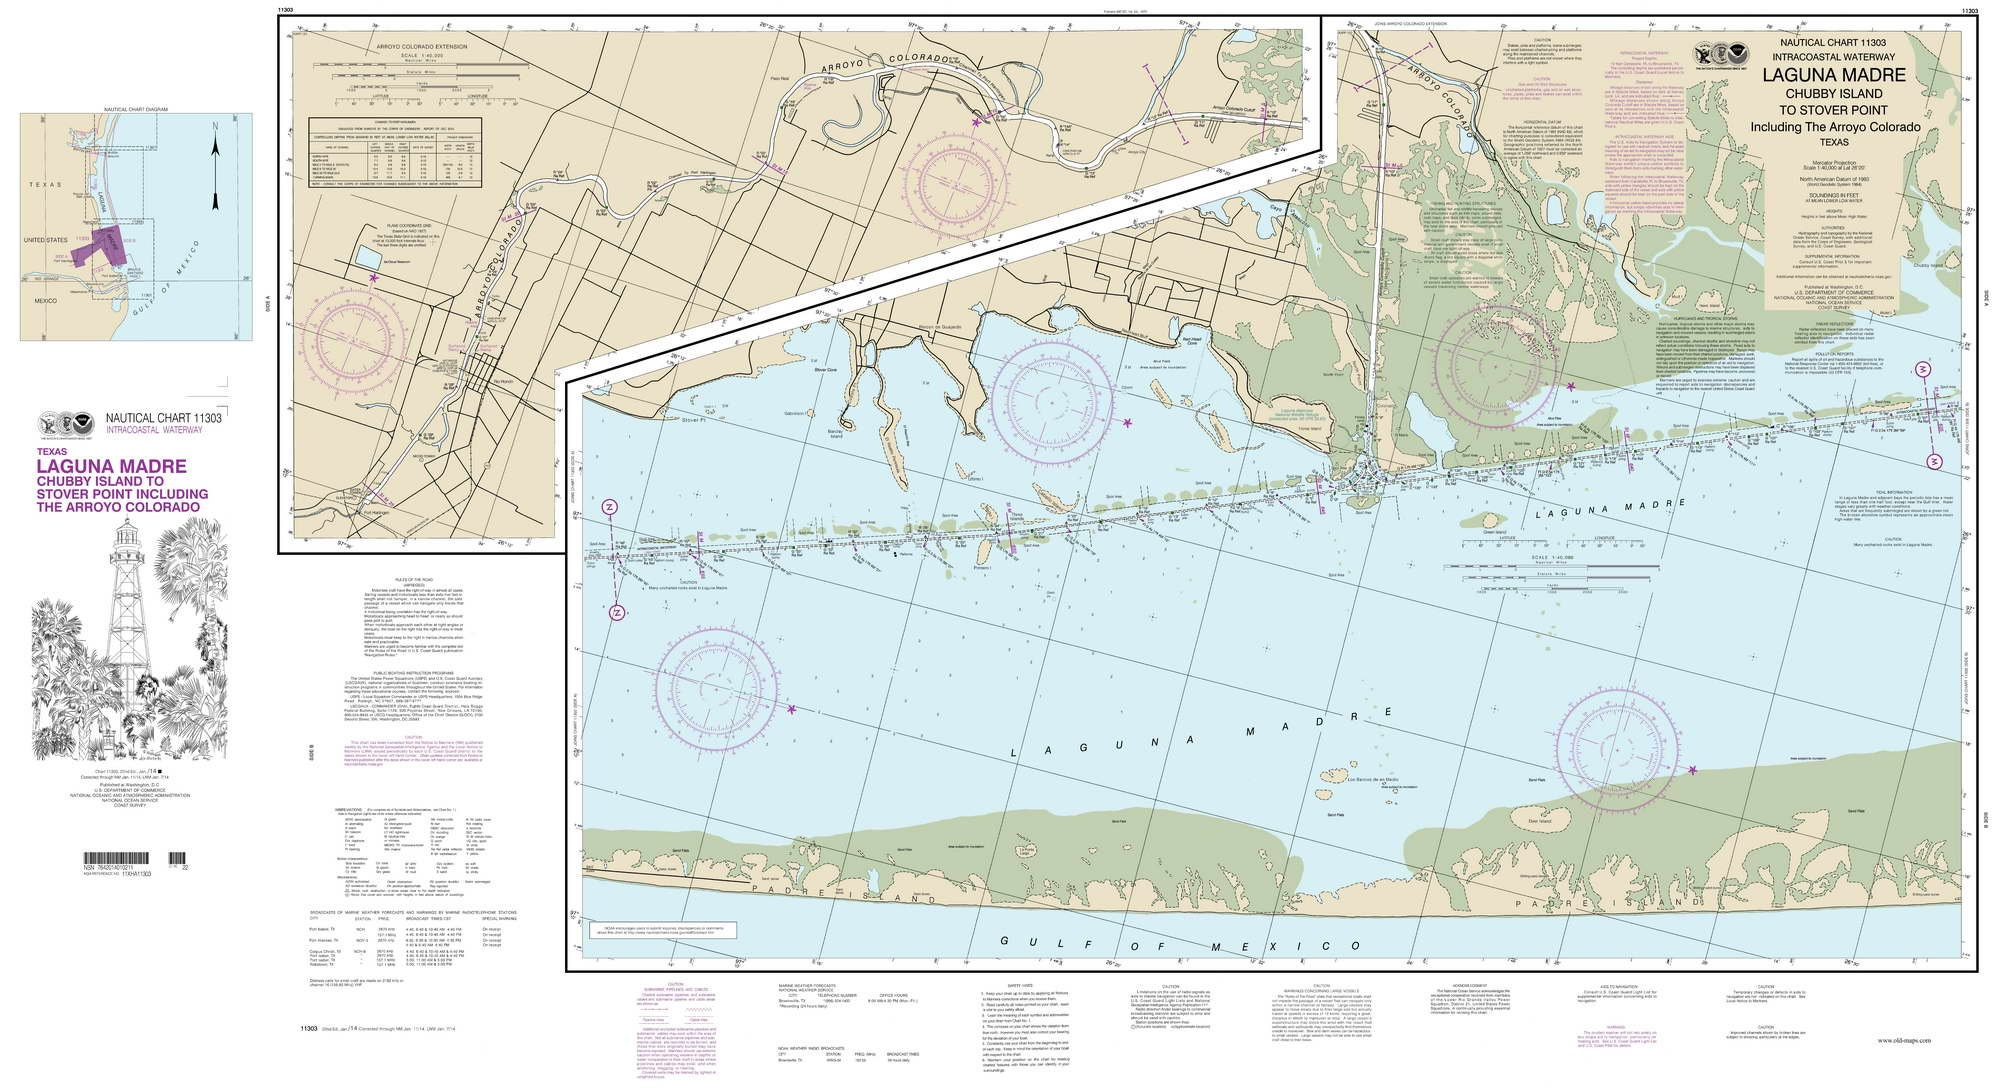 Map Of Texas 2014.Chubby Island To Stover Point 2014 Nautical Map Texas Reprint Ac Harbors 11303